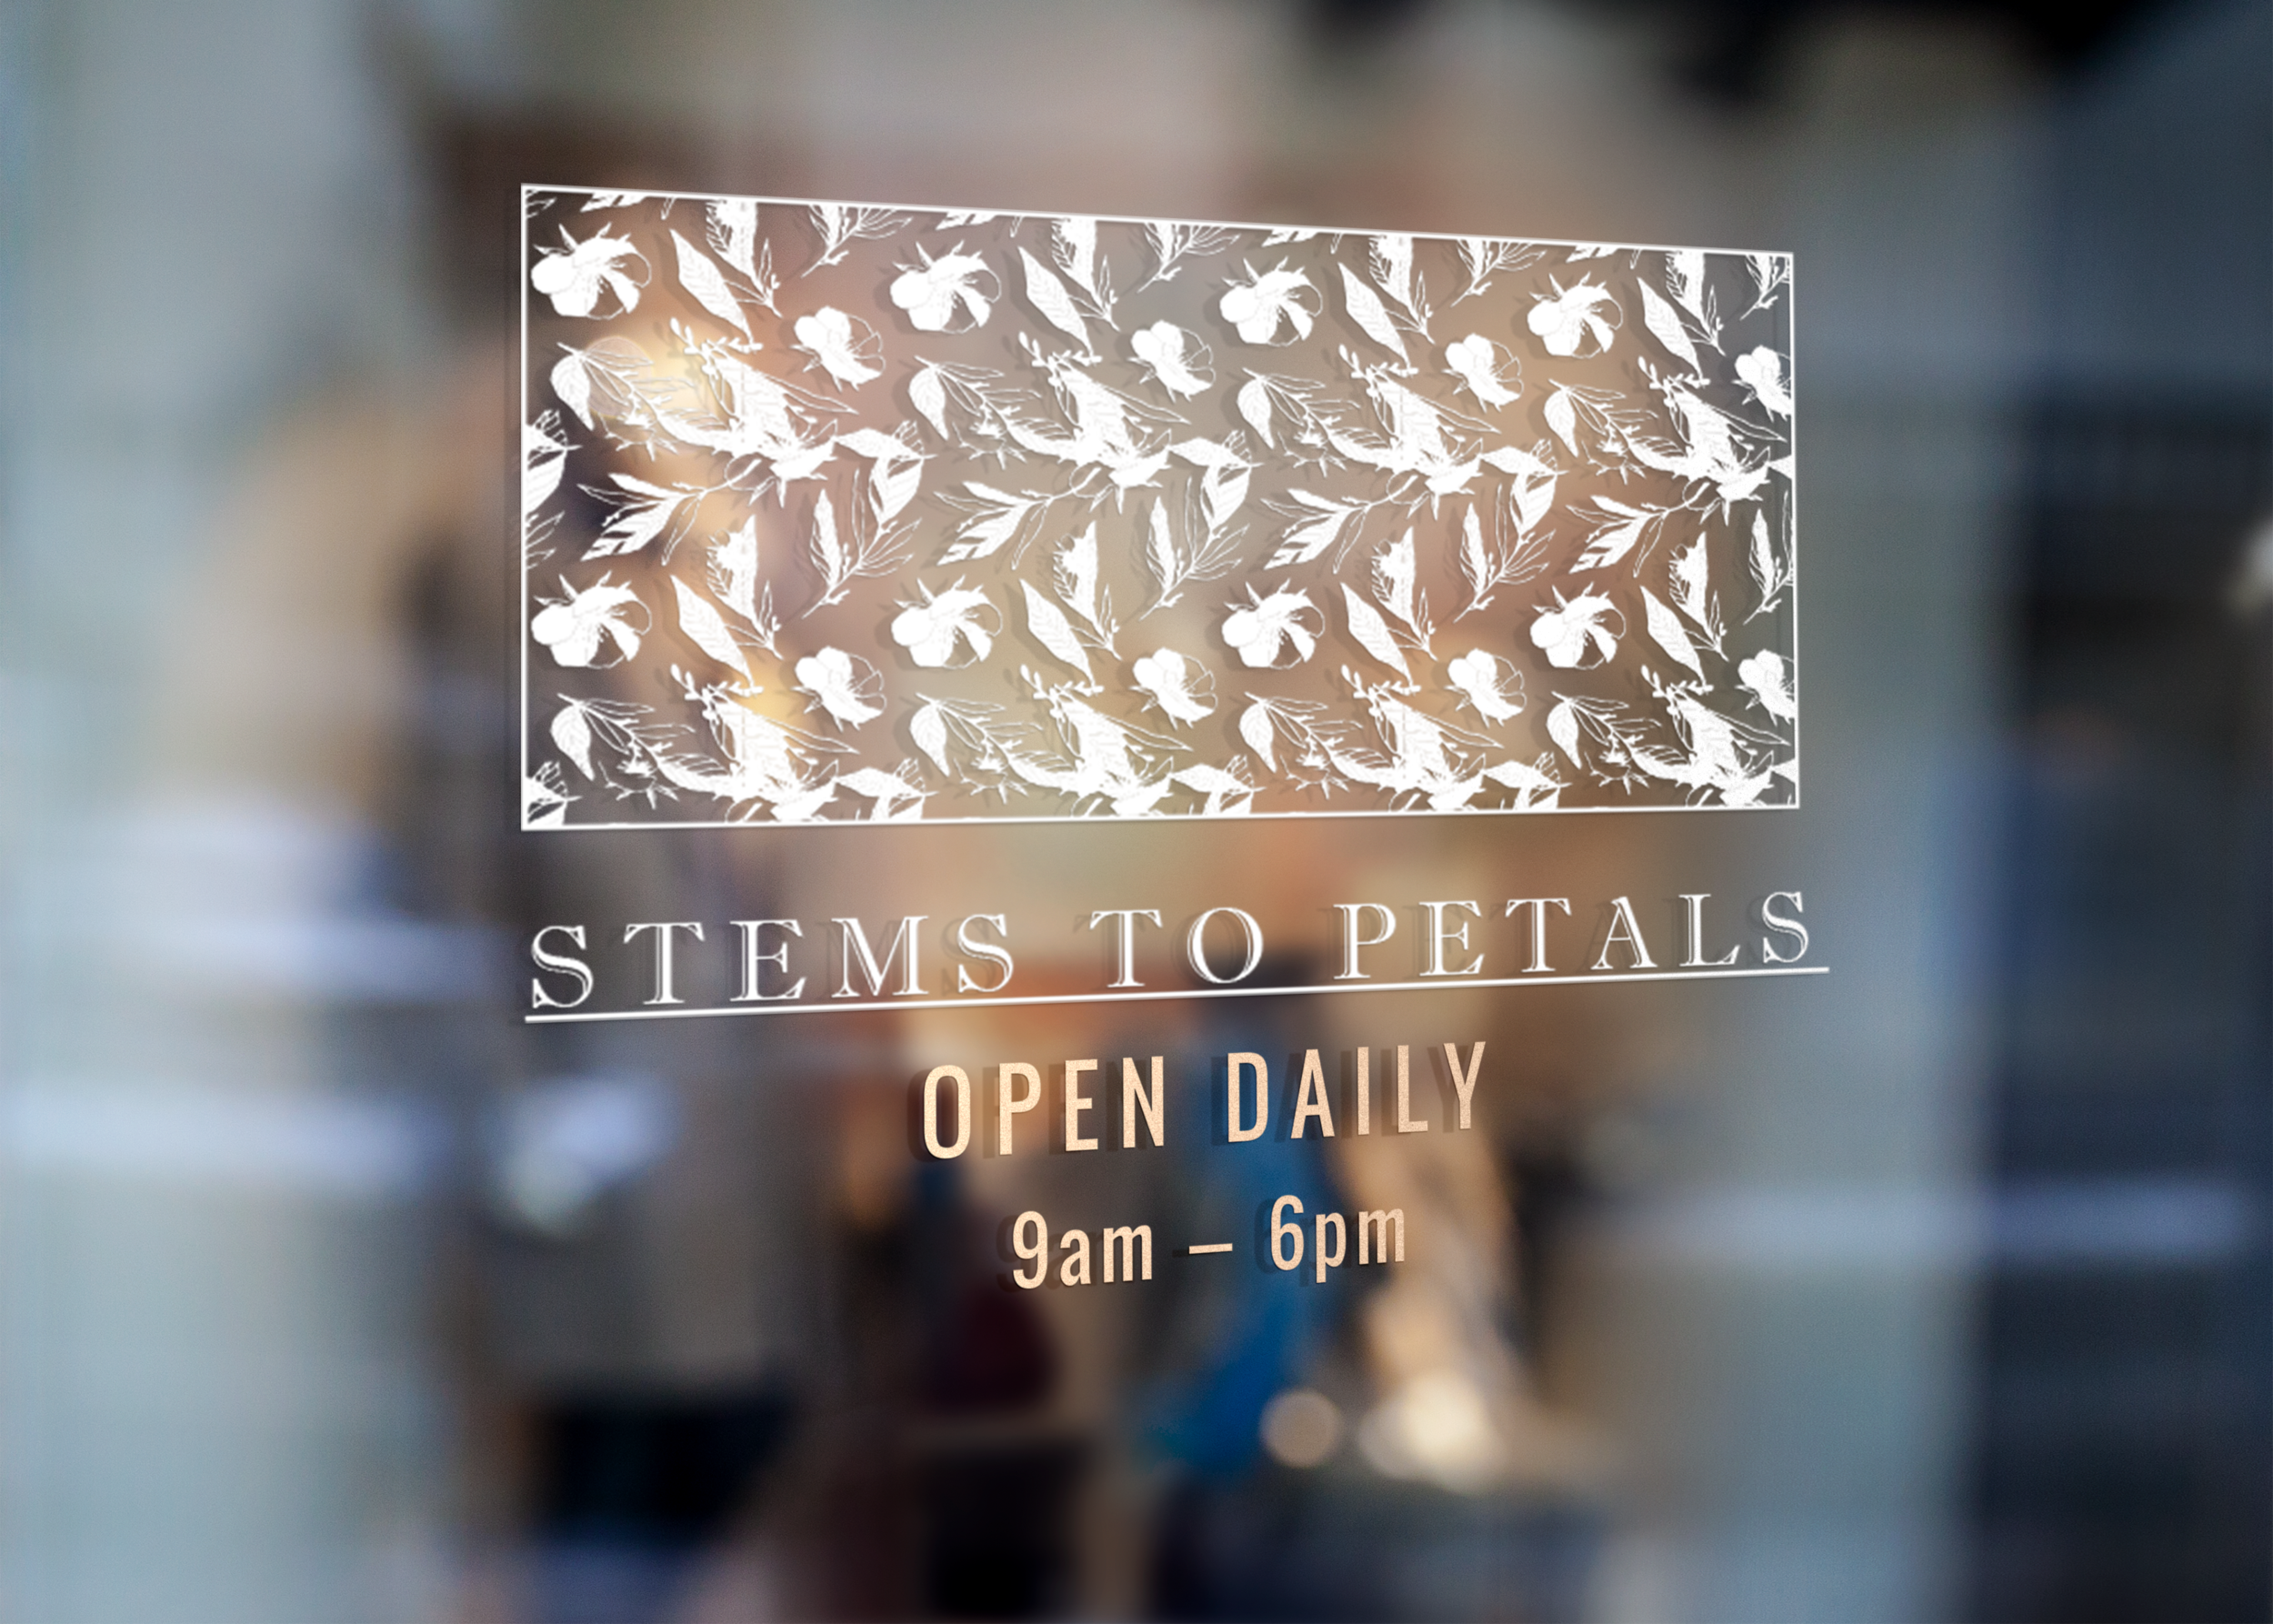 Stems To Petals - Window Signage